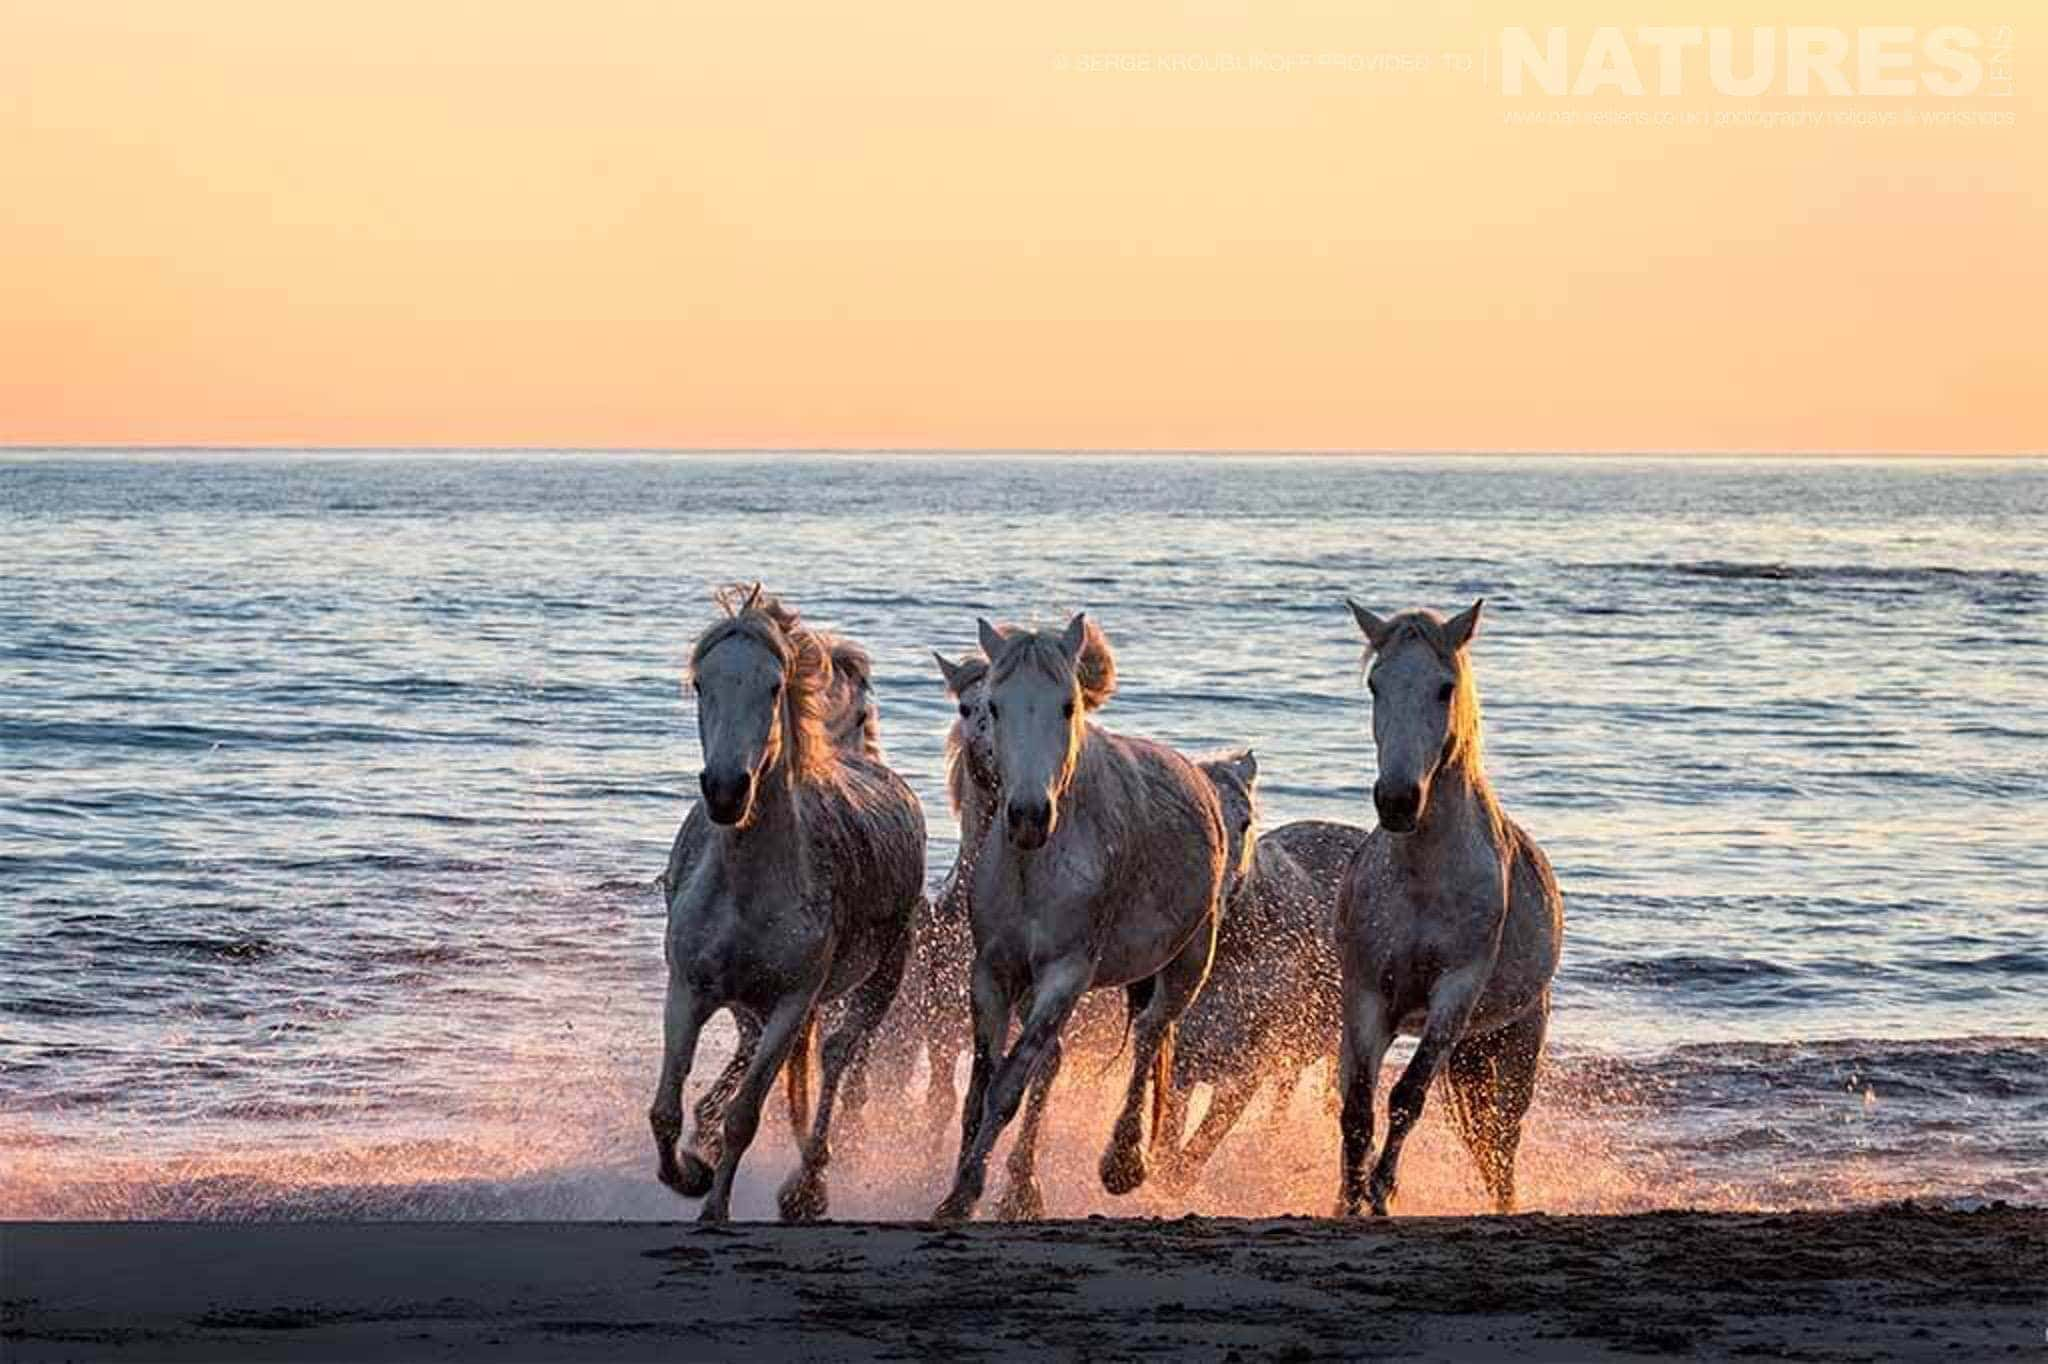 wild white horses at sunset typical of the type of image that may be captured during the NaturesLens Wild White Horses of the Camargue Photography Holiday